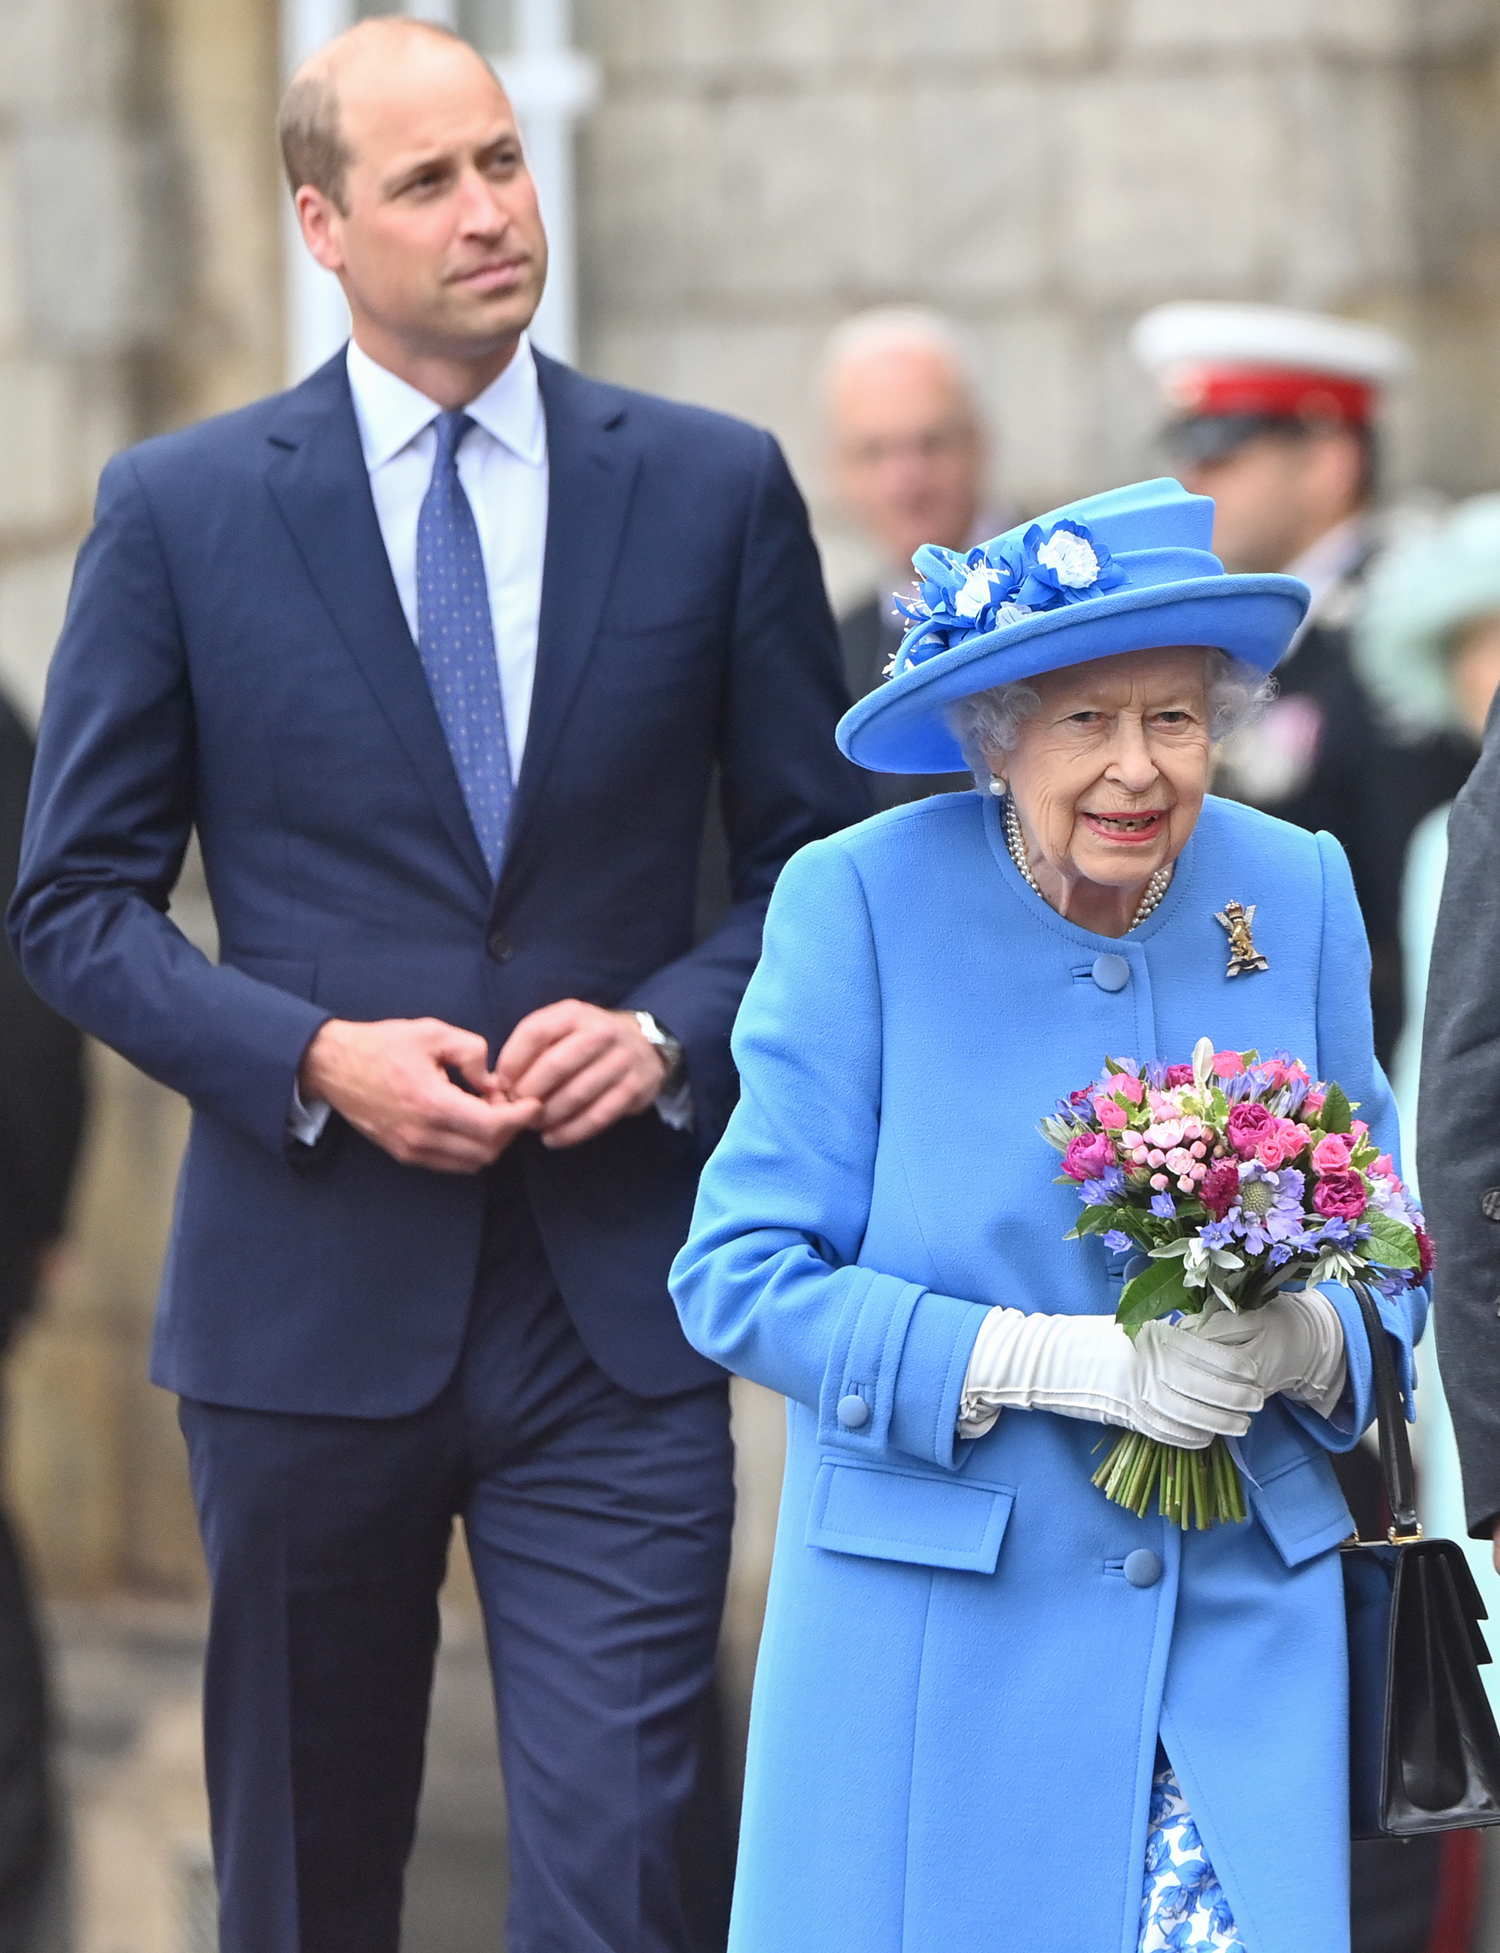 The Queen And The Duke Of Cambridge Attend The Ceremony of the Keys